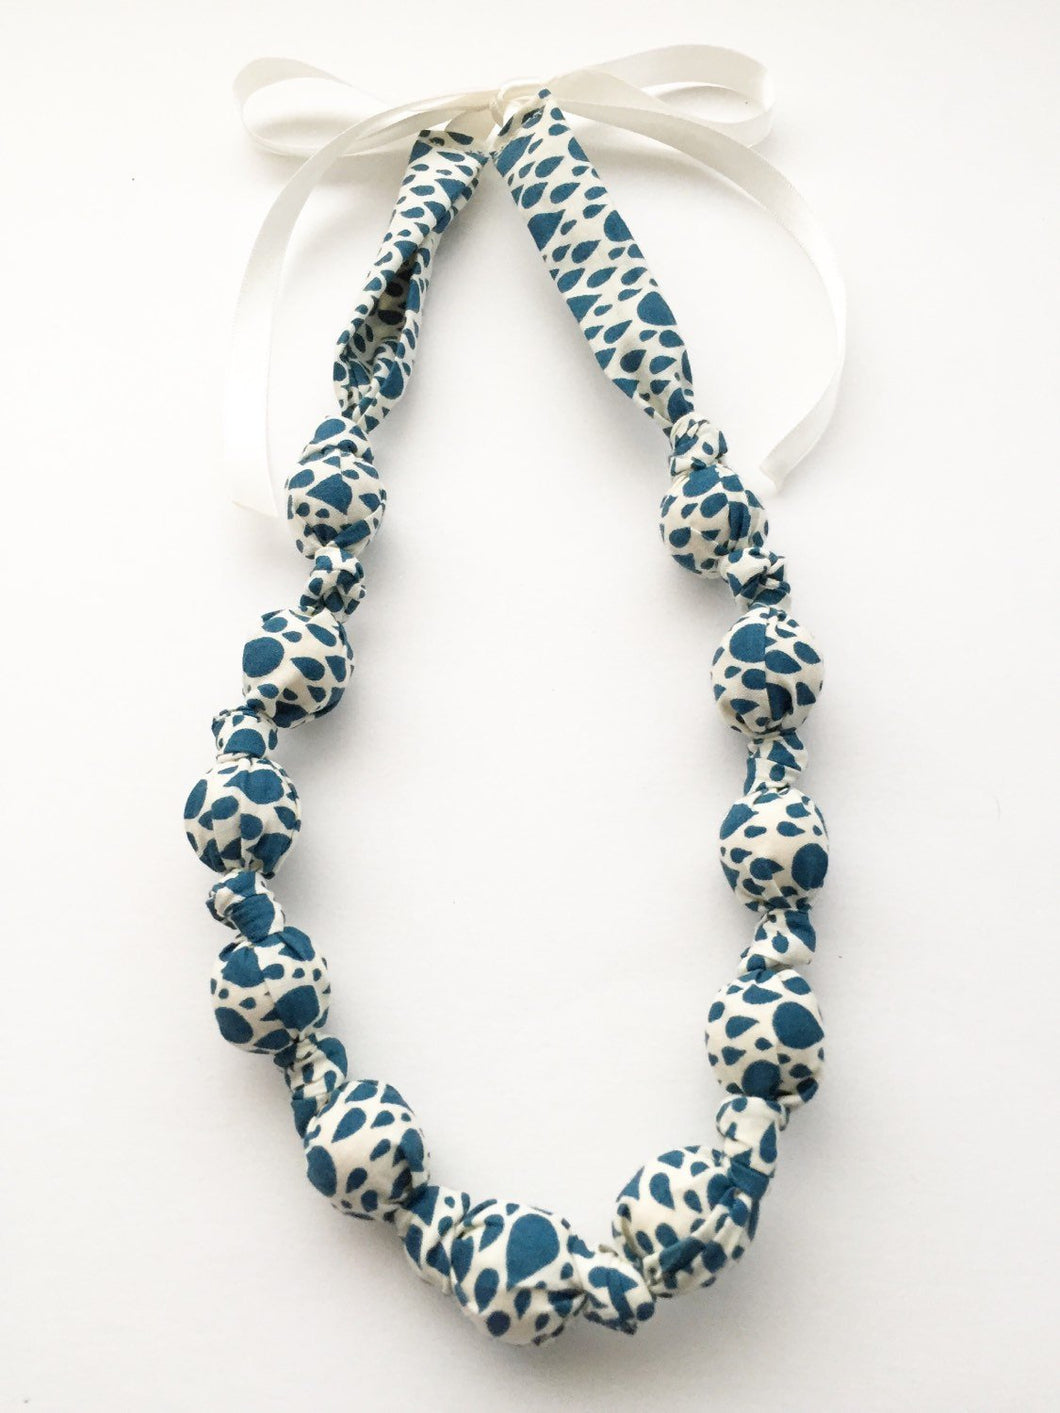 Organic Raindrops in Navy Fabric Teething Nursing Necklace by Wee Kings